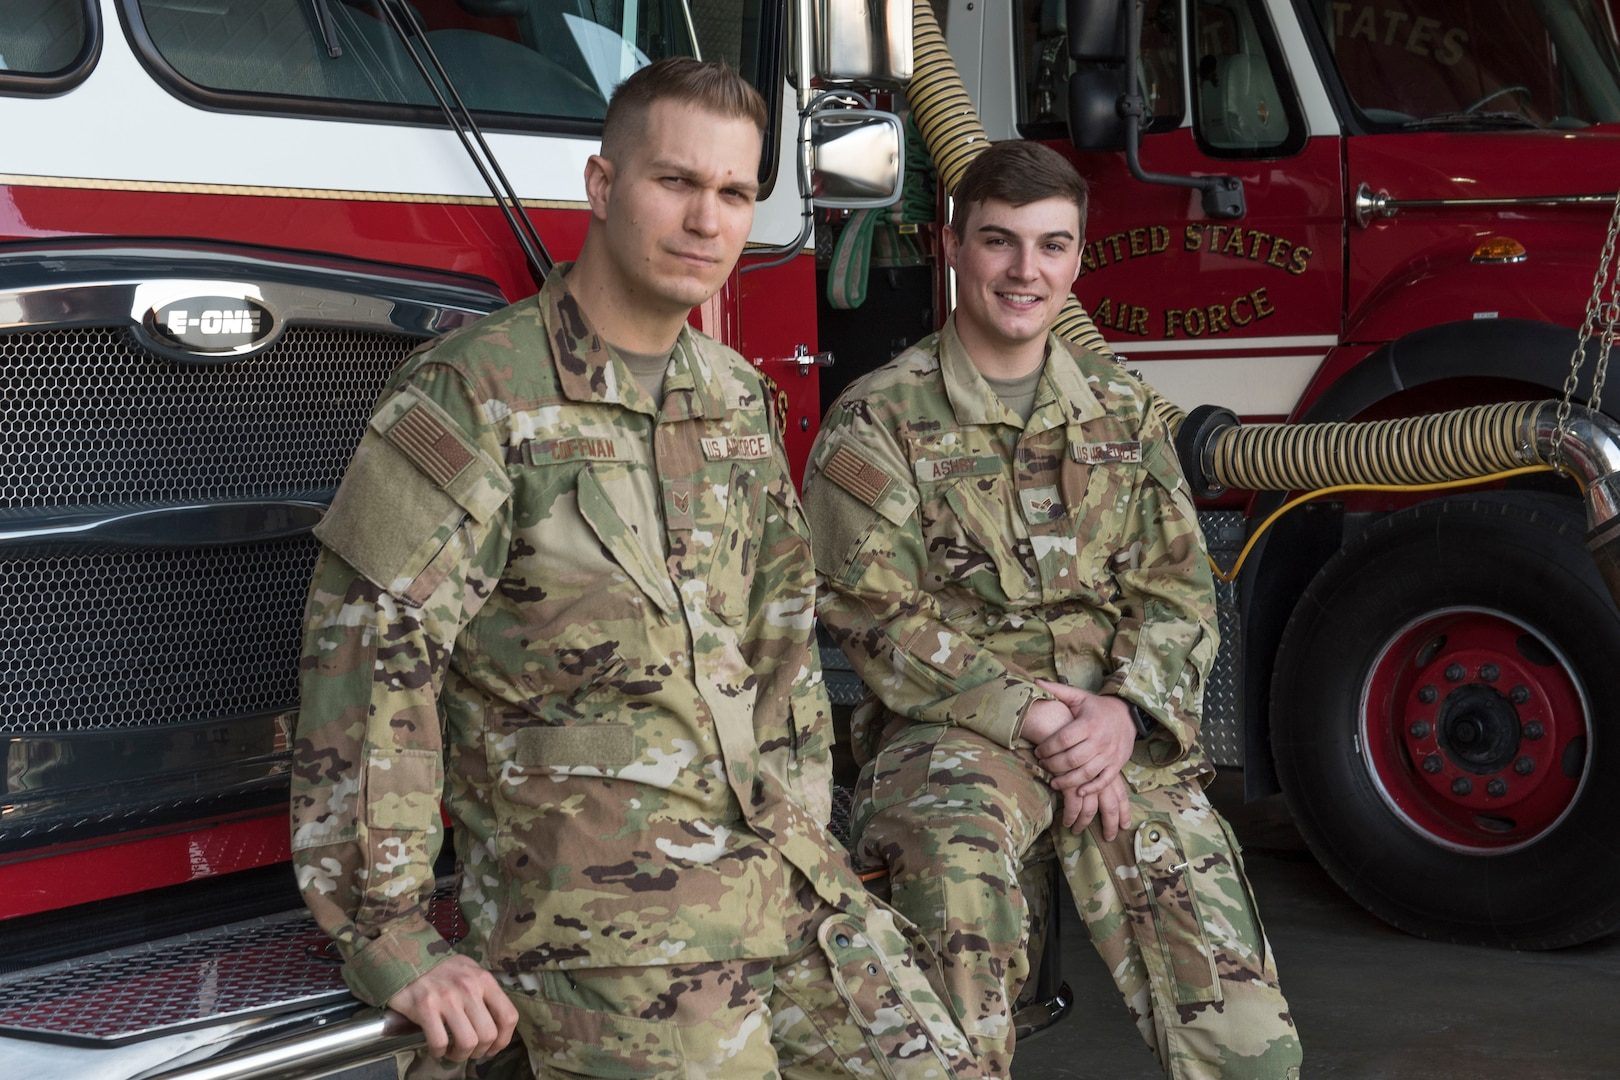 U.S. Air Force Staff Sgt. Daniel Coffman and Senior Airman Justin Ashby, firefighters for the 167th Civil Engineering Squadron, recently saved a man's life, pulling him out of a burning house. The firefighters credit the feat to their intensive training.